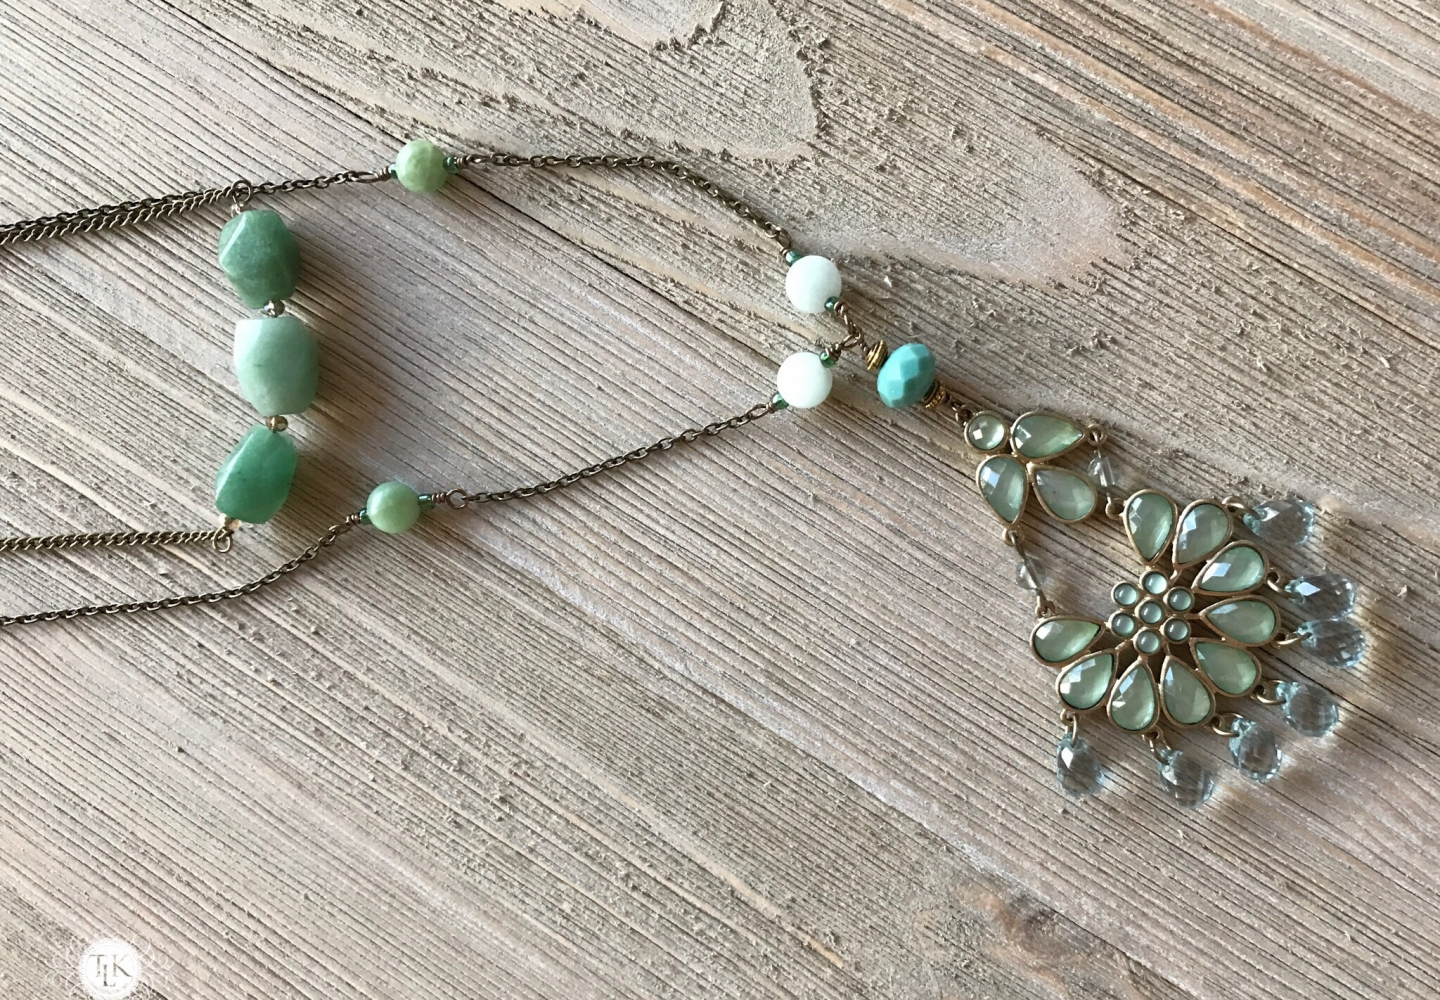 THREE LITTLE KITTENS | 3708n Amazonite and Costume Jewelry Pendant Necklace with 3706n Amazonite Faceted Nugget Bar Necklace